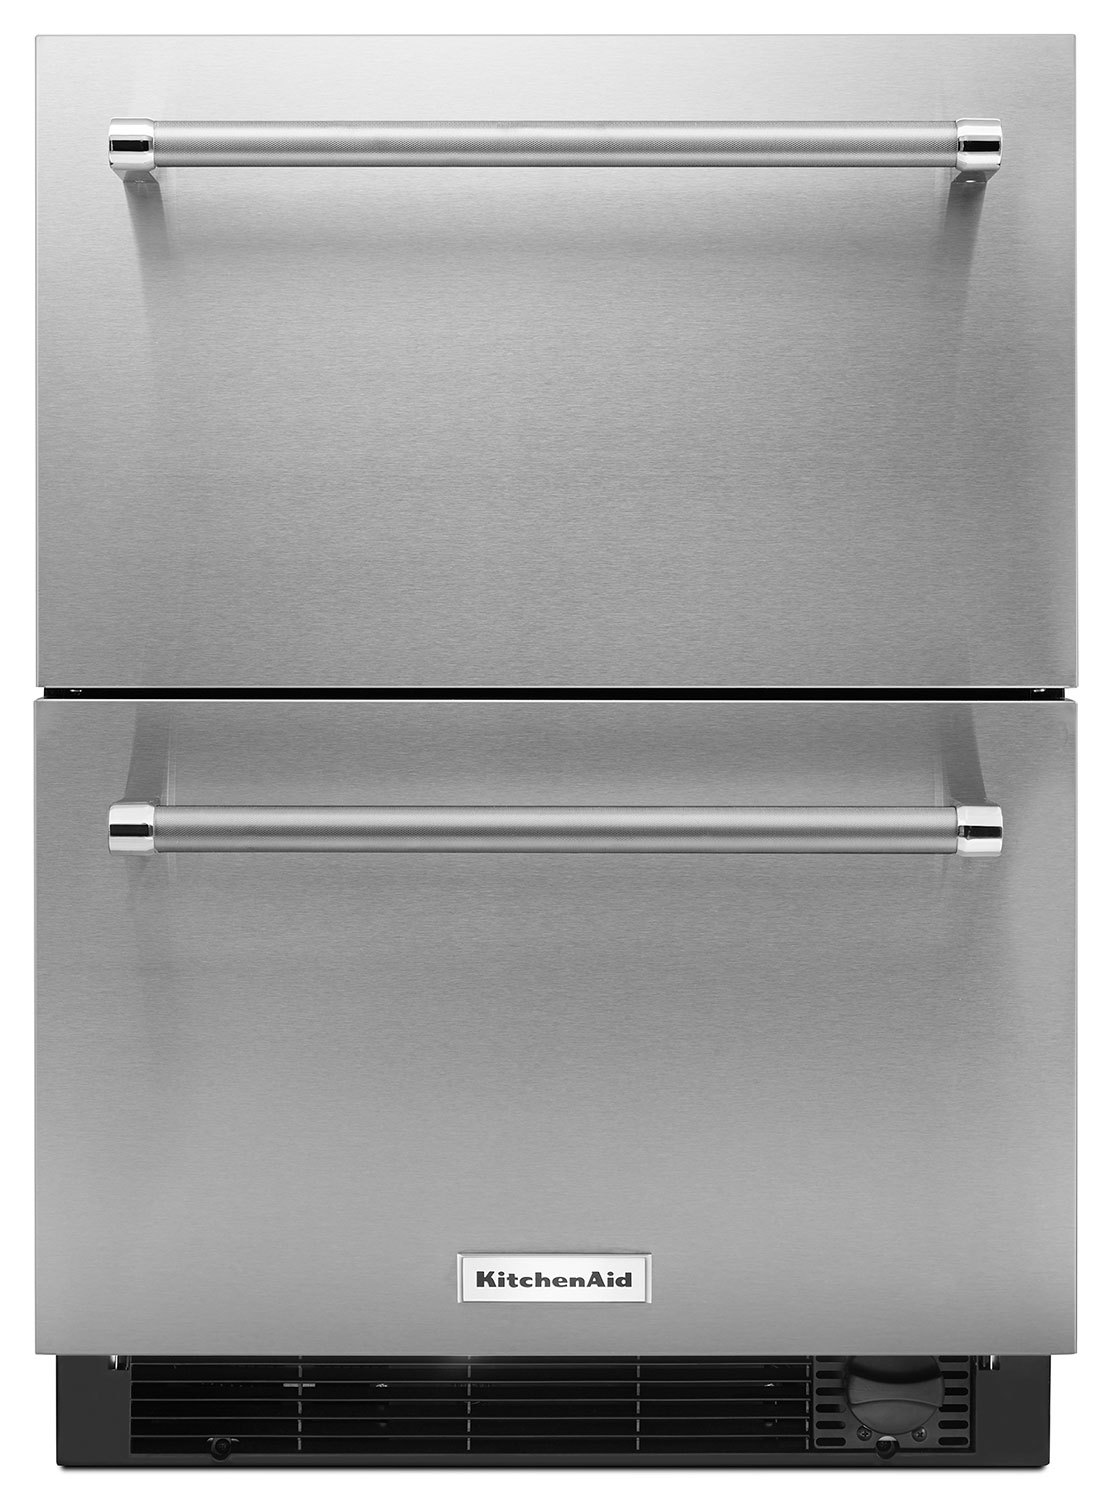 KitchenAid Stainless Steel Compact Refrigerator w/ Freezer Drawer (4.7 Cu. Ft.) - KUDF204ESB